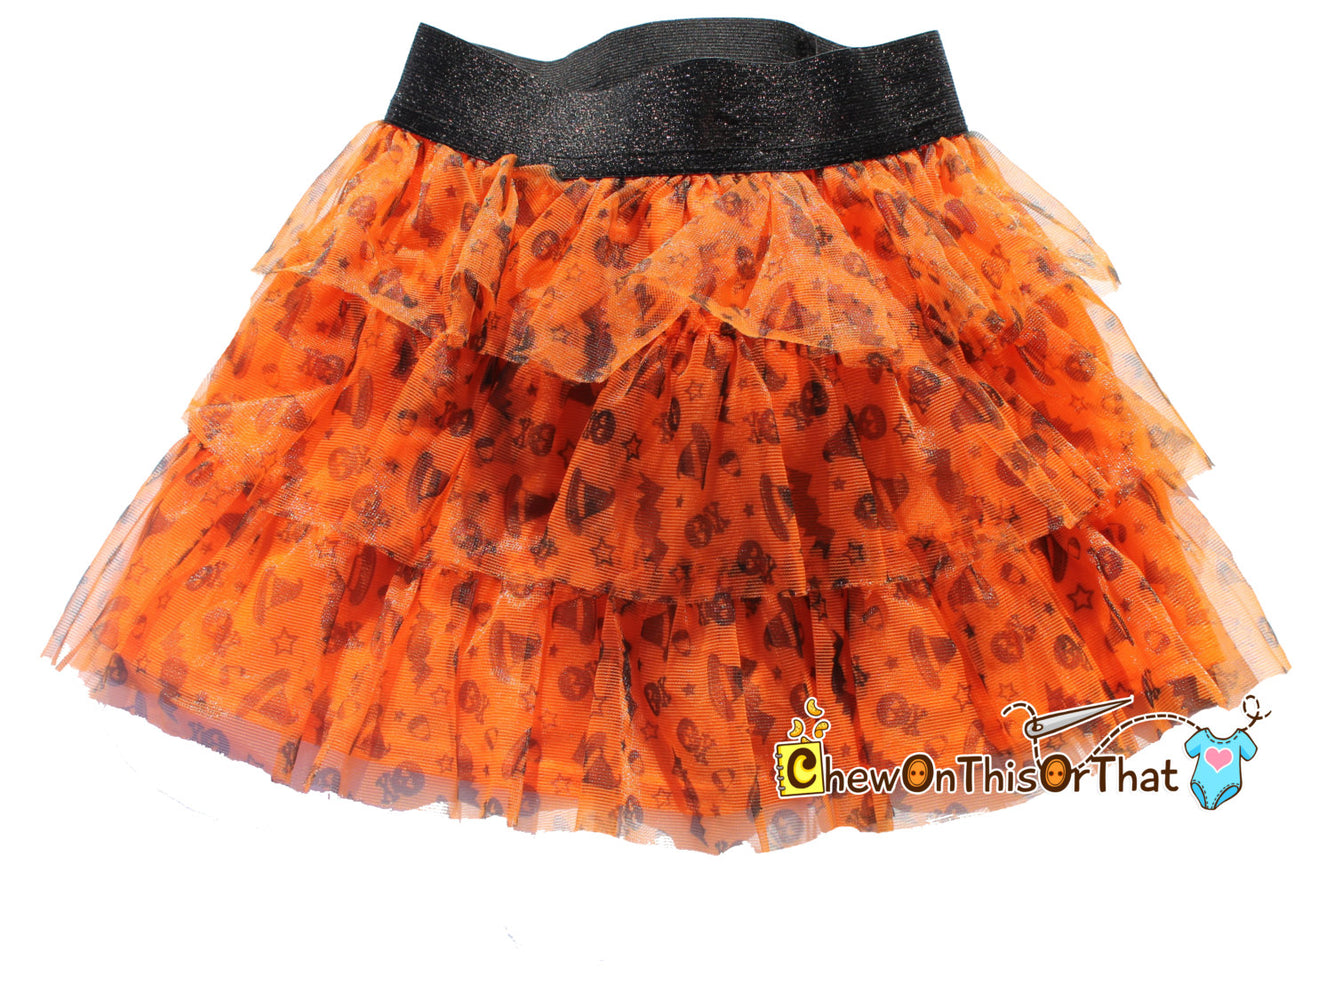 Orange Halloween Tutu Skirt with Black Elastic Band and Satin Lining - Toddler Flared Ruffled Skirt - Chew On This Or That